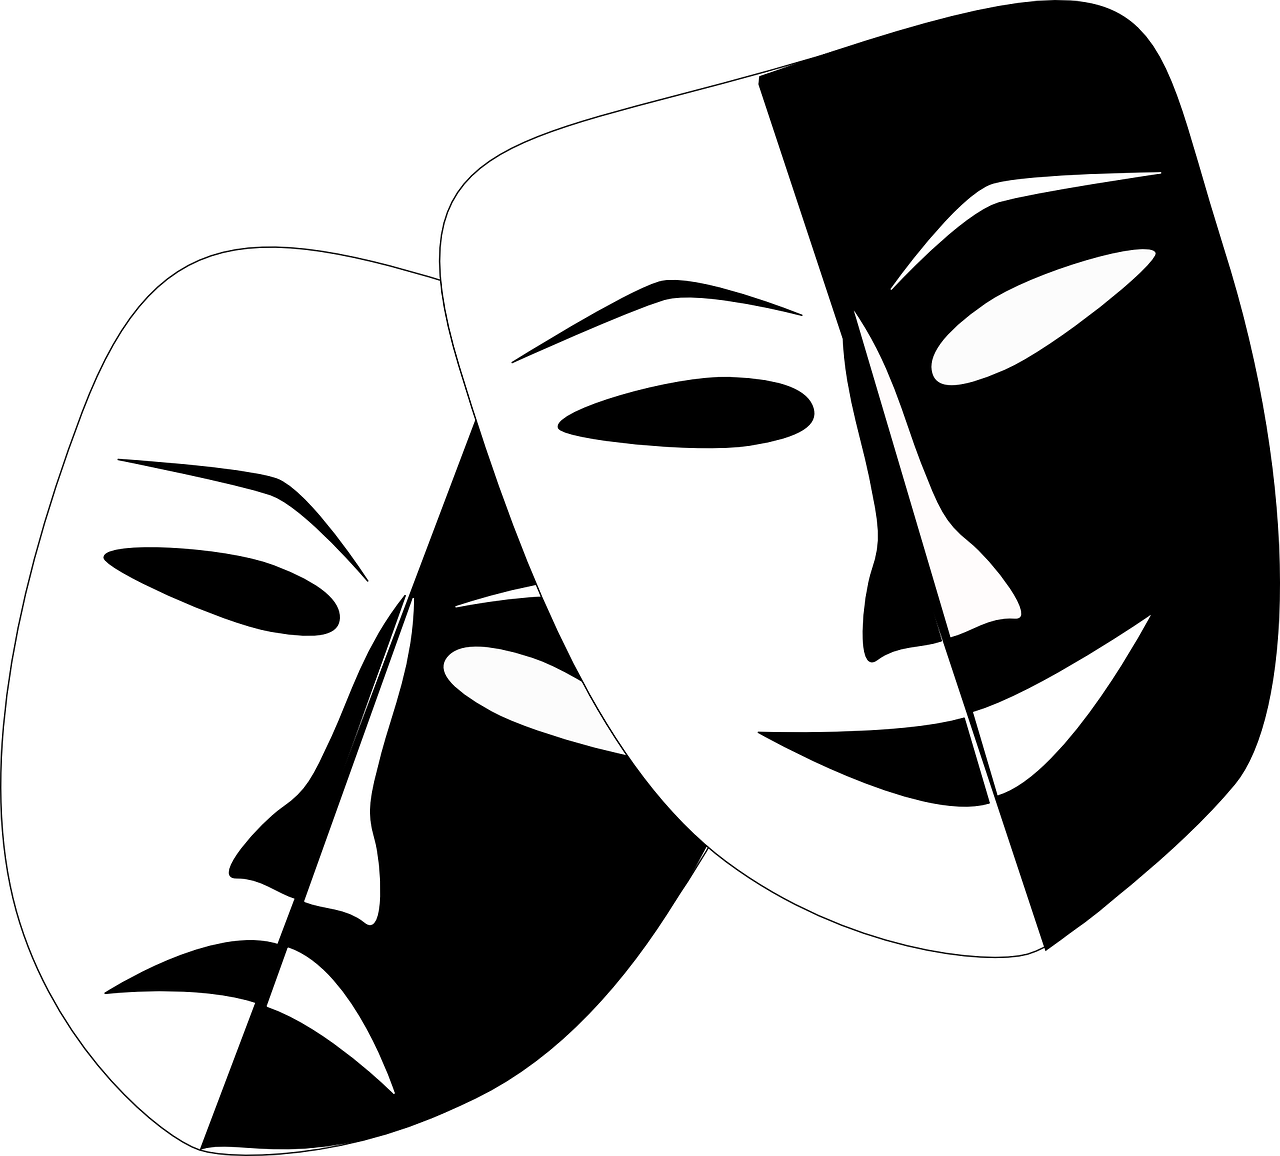 Mask clipart mood disorder. Designing and creating clothing